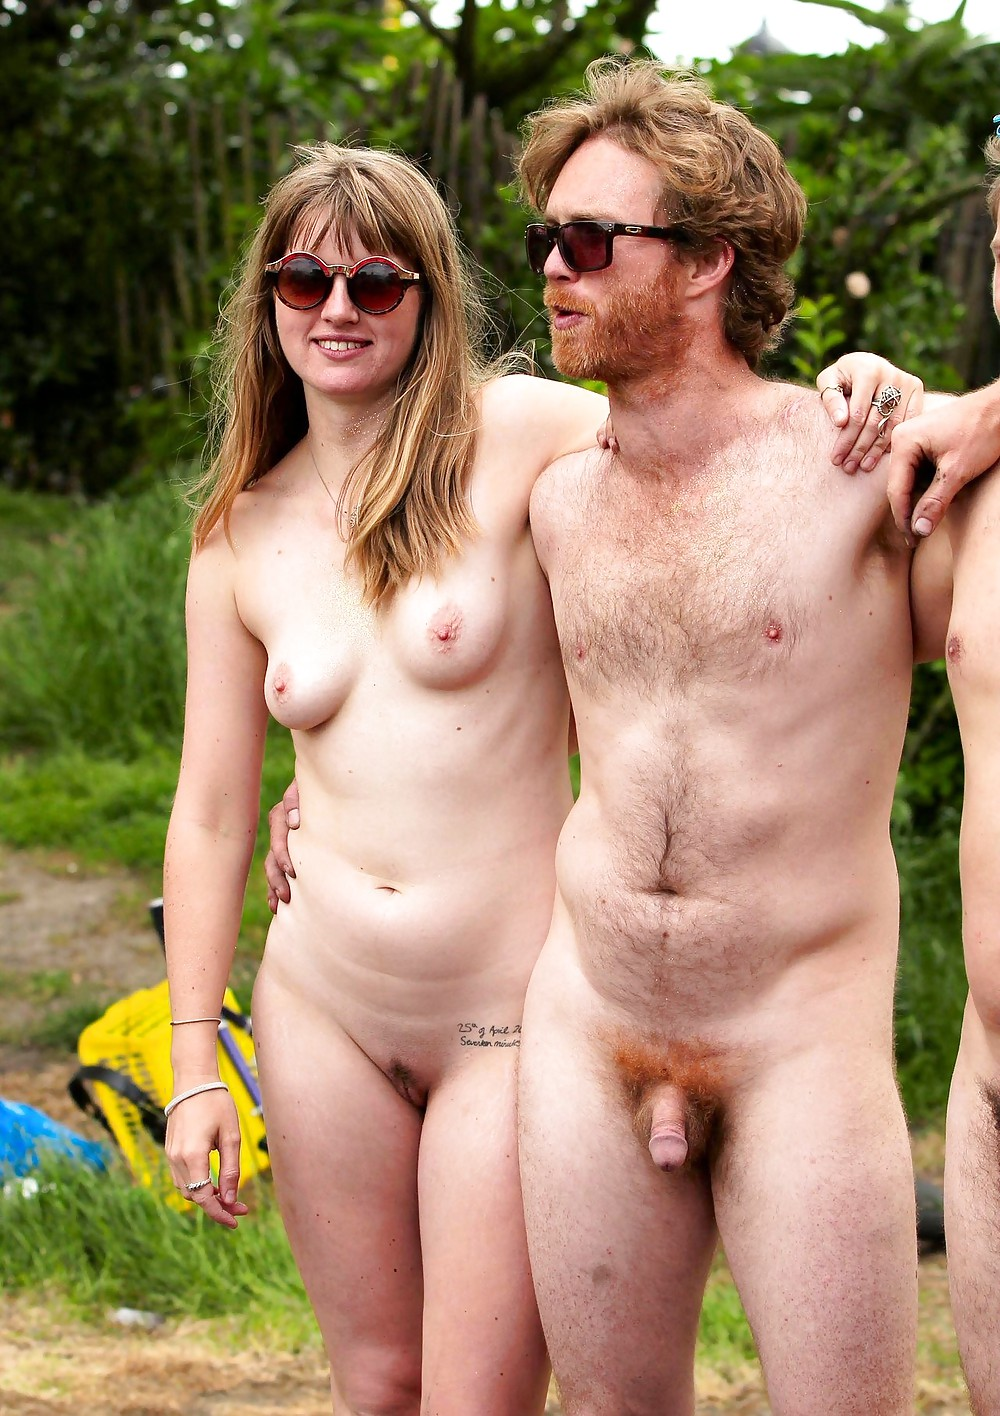 Private nude family photos